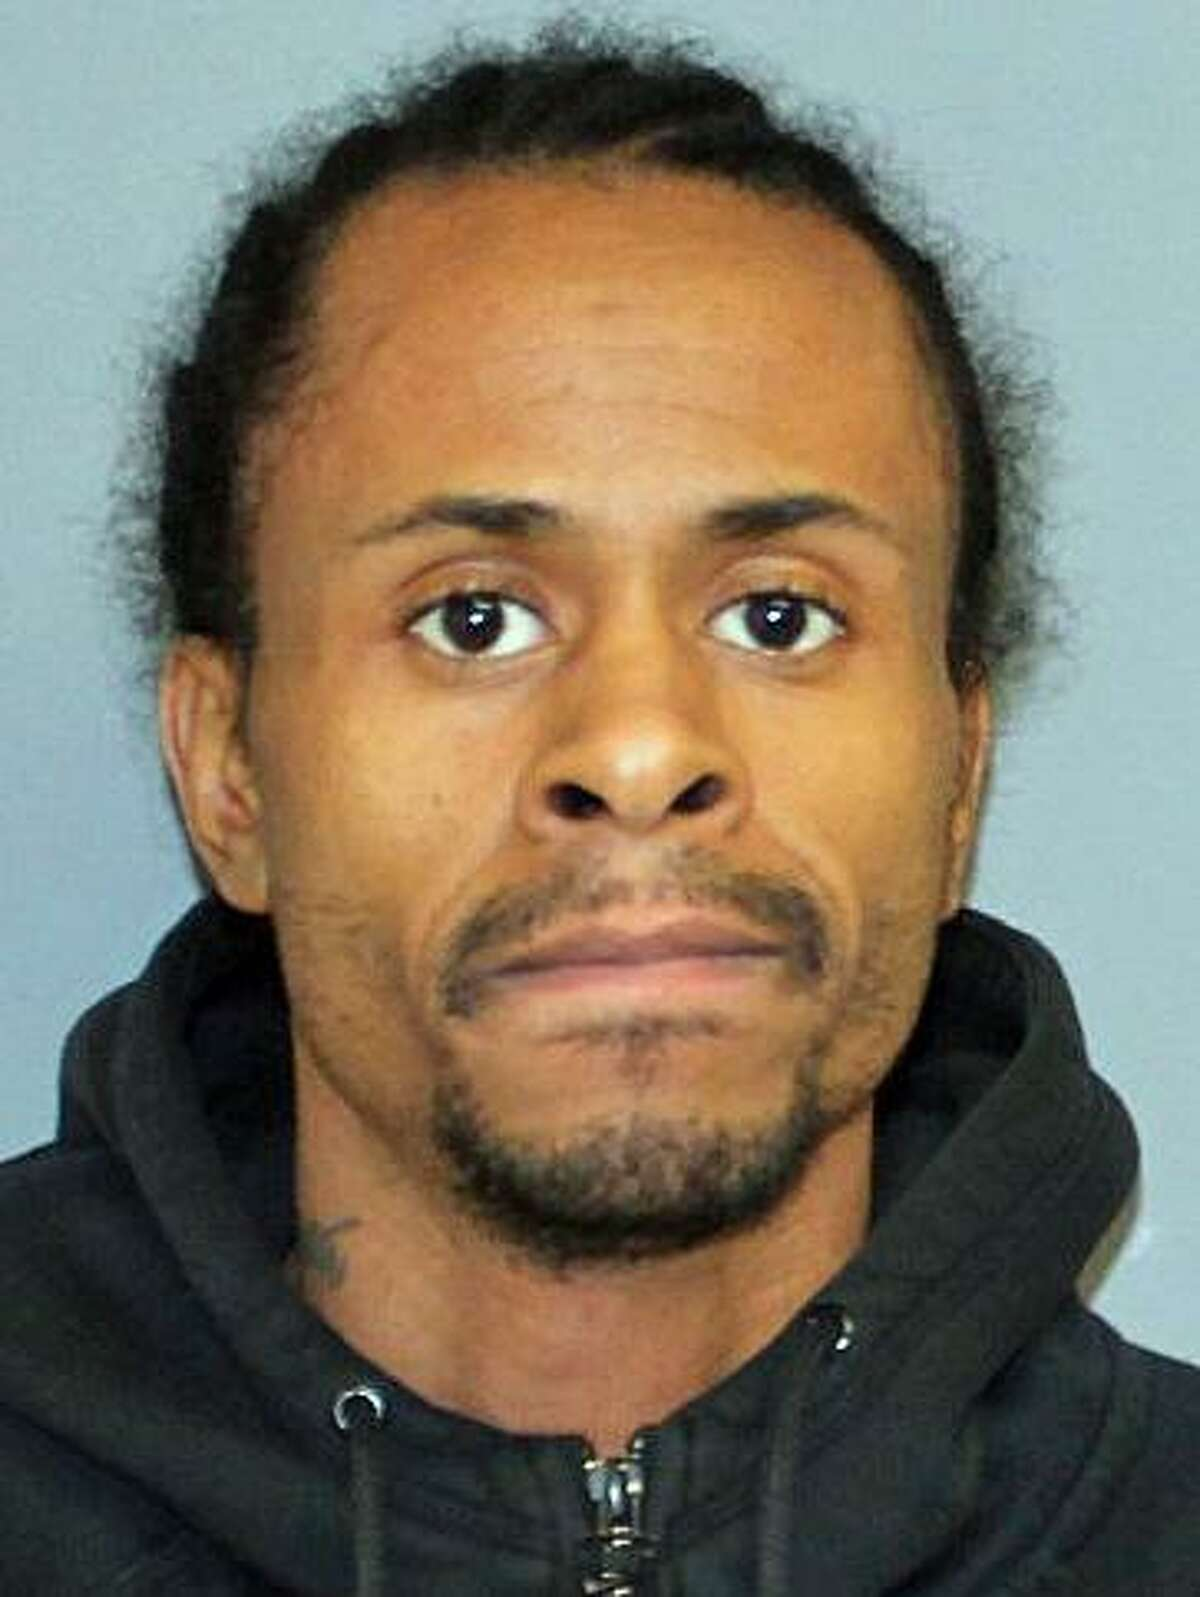 Keron Nixon, 34, of Stratford Avenue in Bridgeport was been arrested on numerous burglary charges on Tuesday, Dec. 20, 2016. Nieves and Roman Nieves,. 37, of Sherwood Avenue, Bridgeport, have been linked to five burglaries in just one night. And police say they expect to file additional charges for other burglaries in nearby towns.